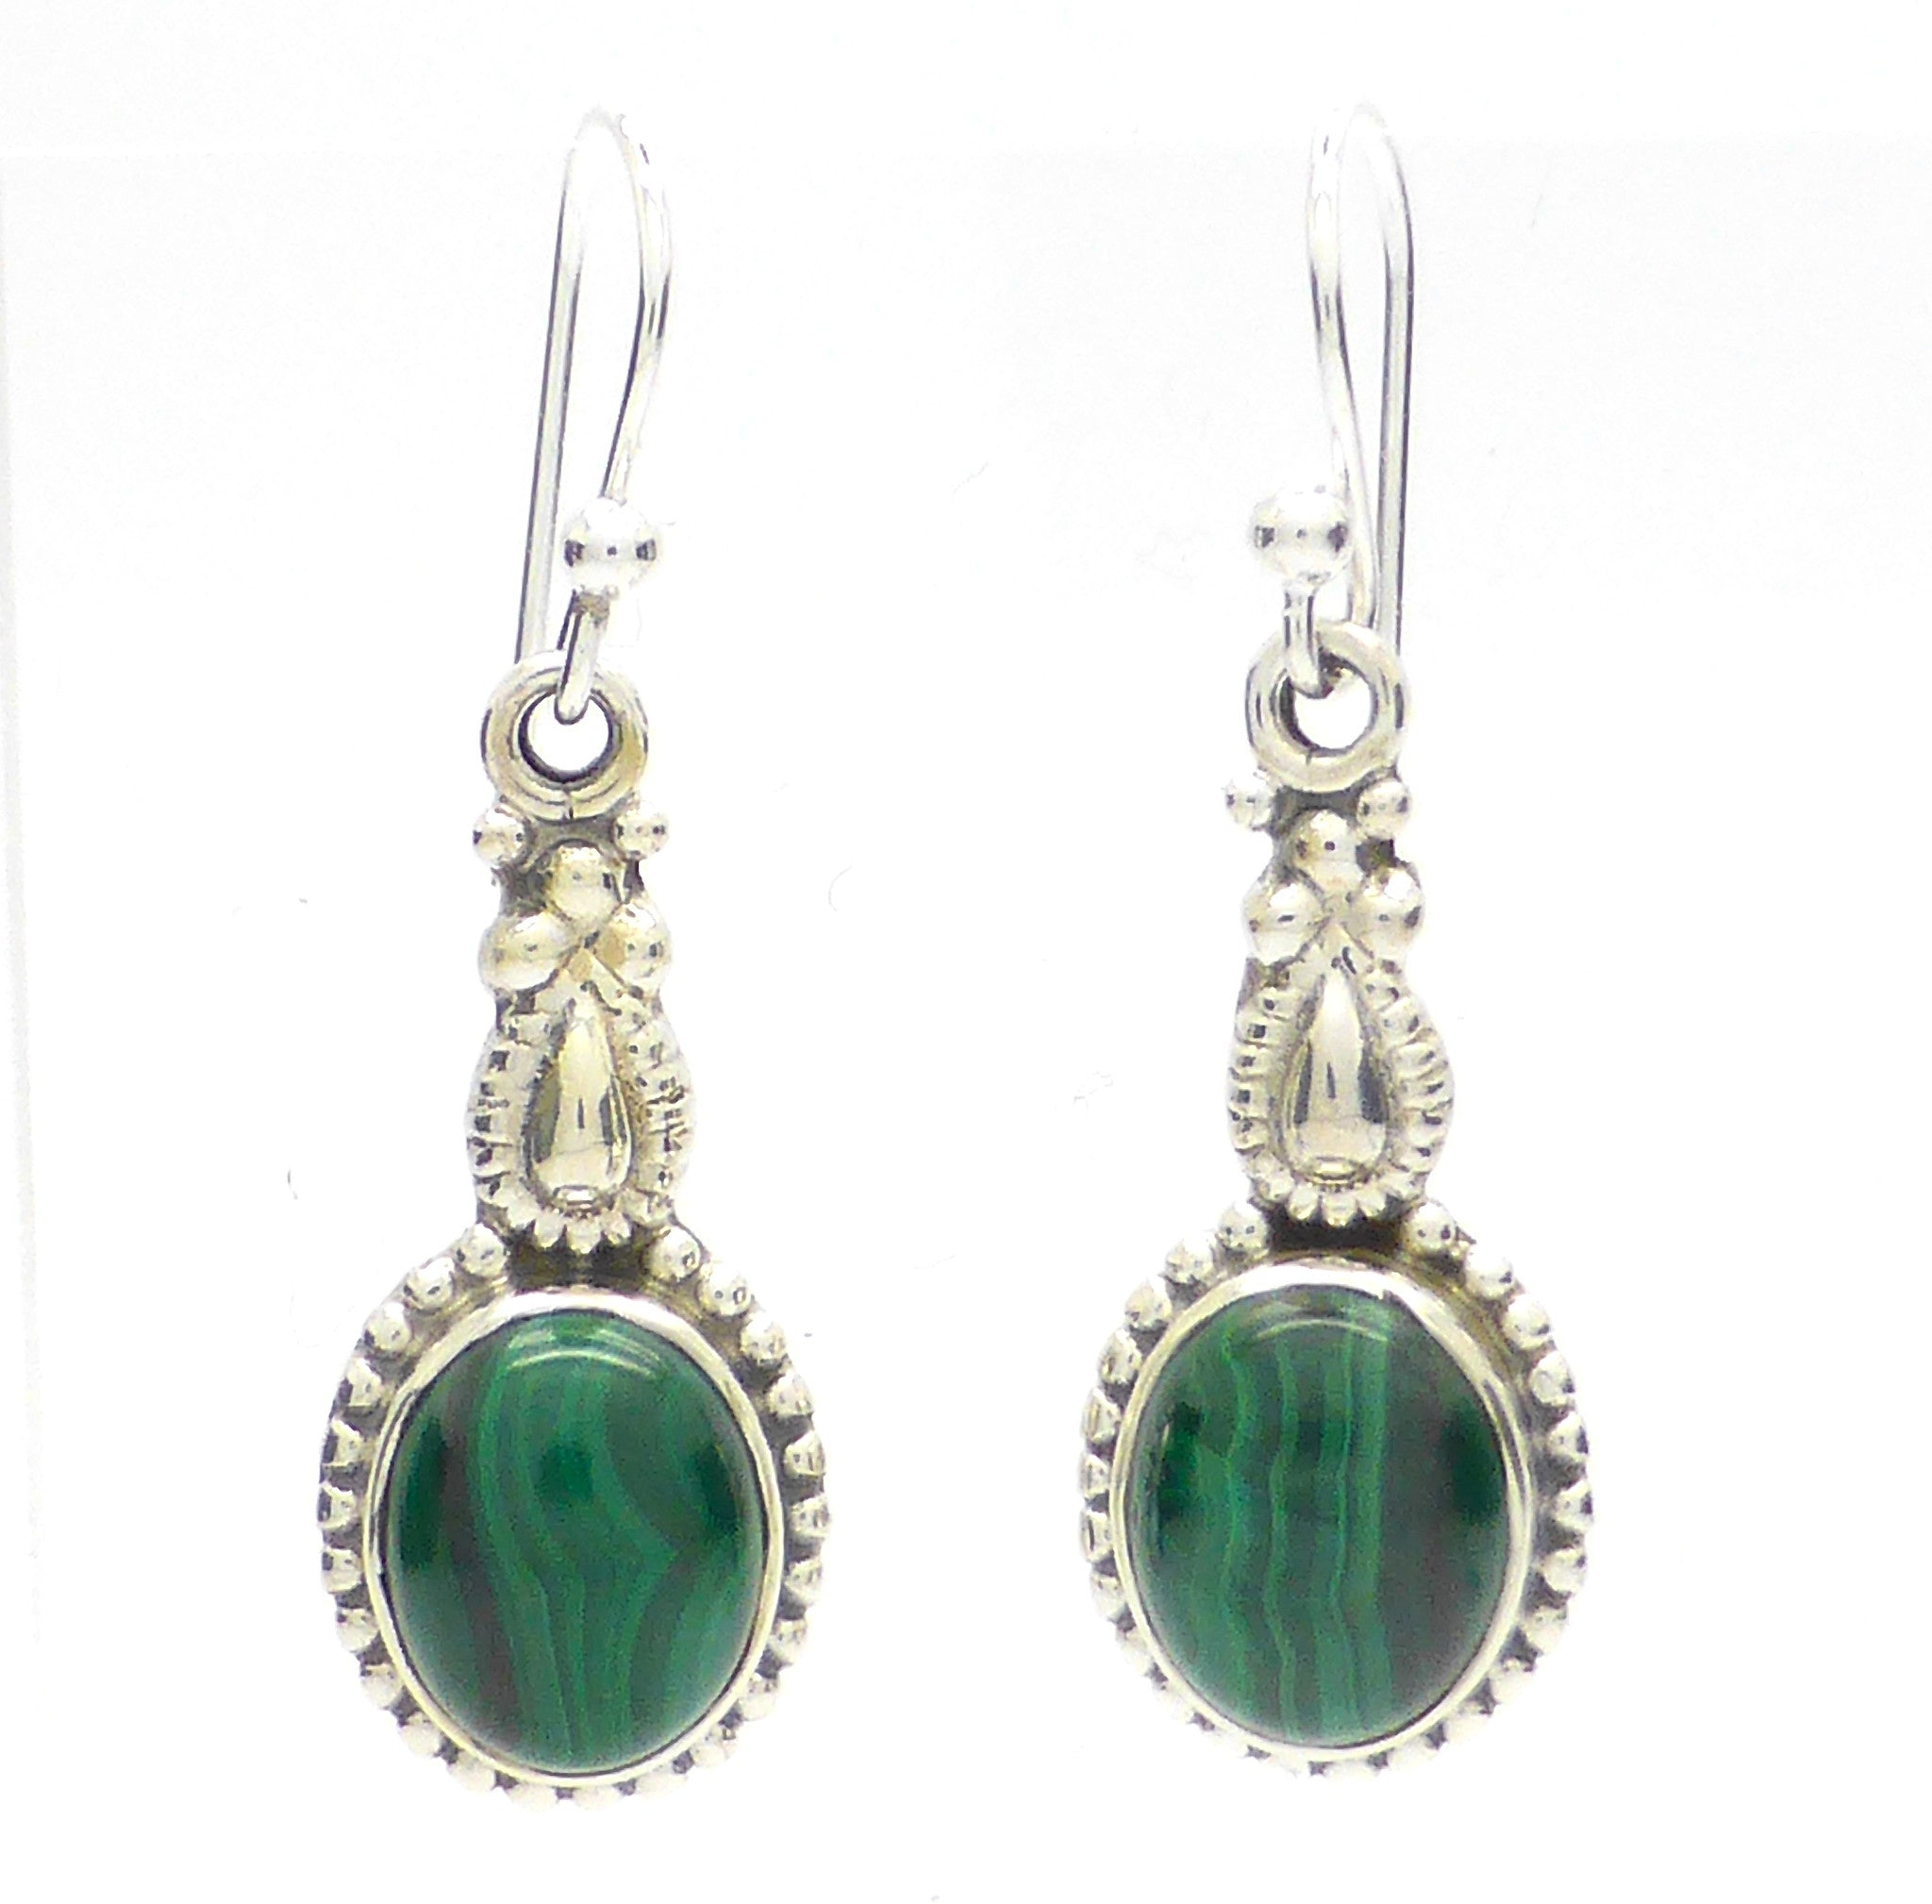 Malachite Gemstone Earrings | Oval Cabochon | 925 Sterling Silver | Ethnic Detail |  Crystal Heart Melbourne Australia since 1986